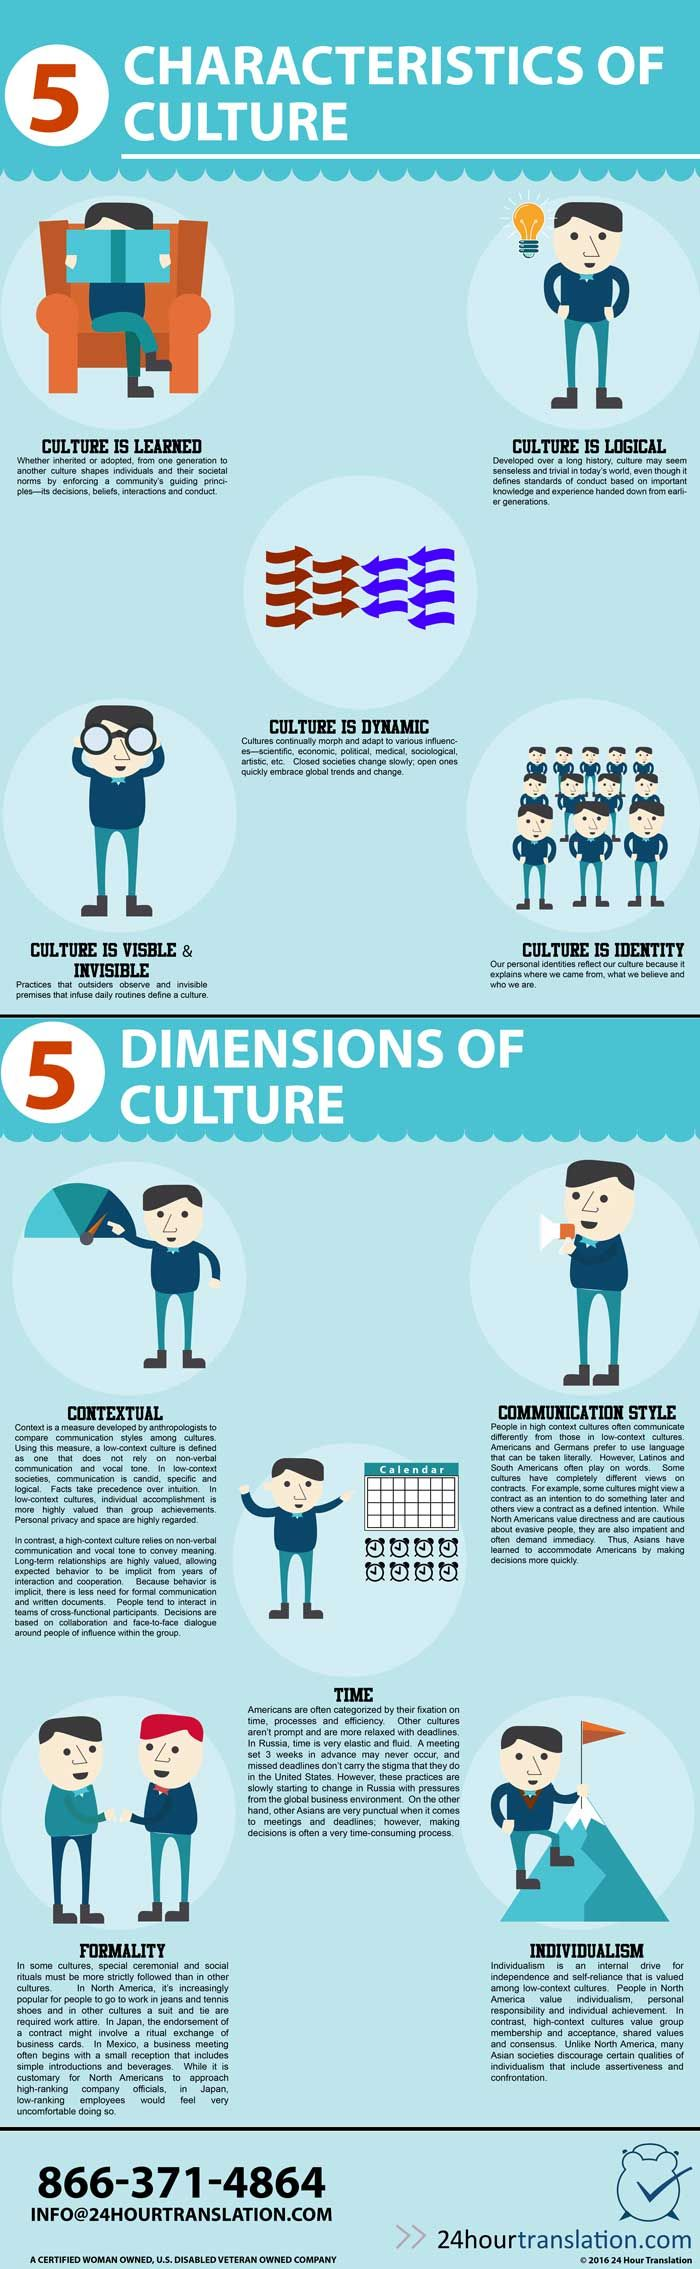 Respecting The Characteristics and Dimensions of Culture